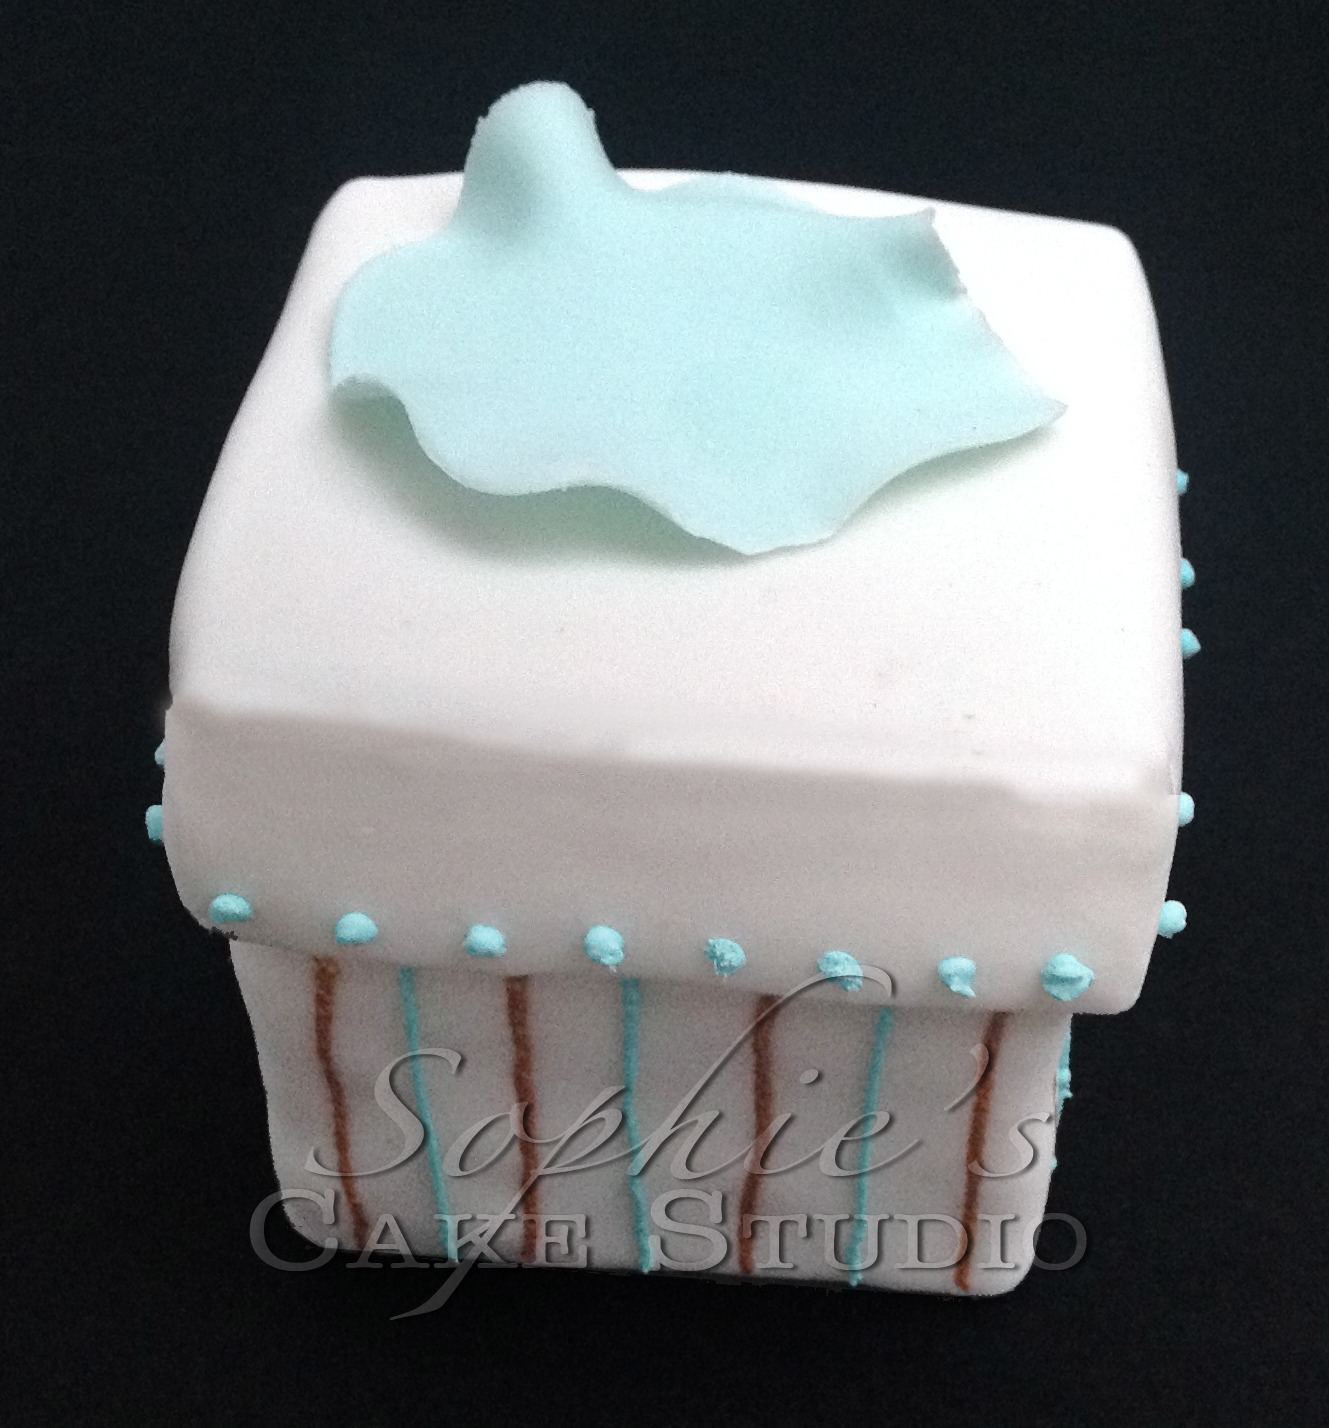 tiffany wedding cupcake5 watermark.jpg